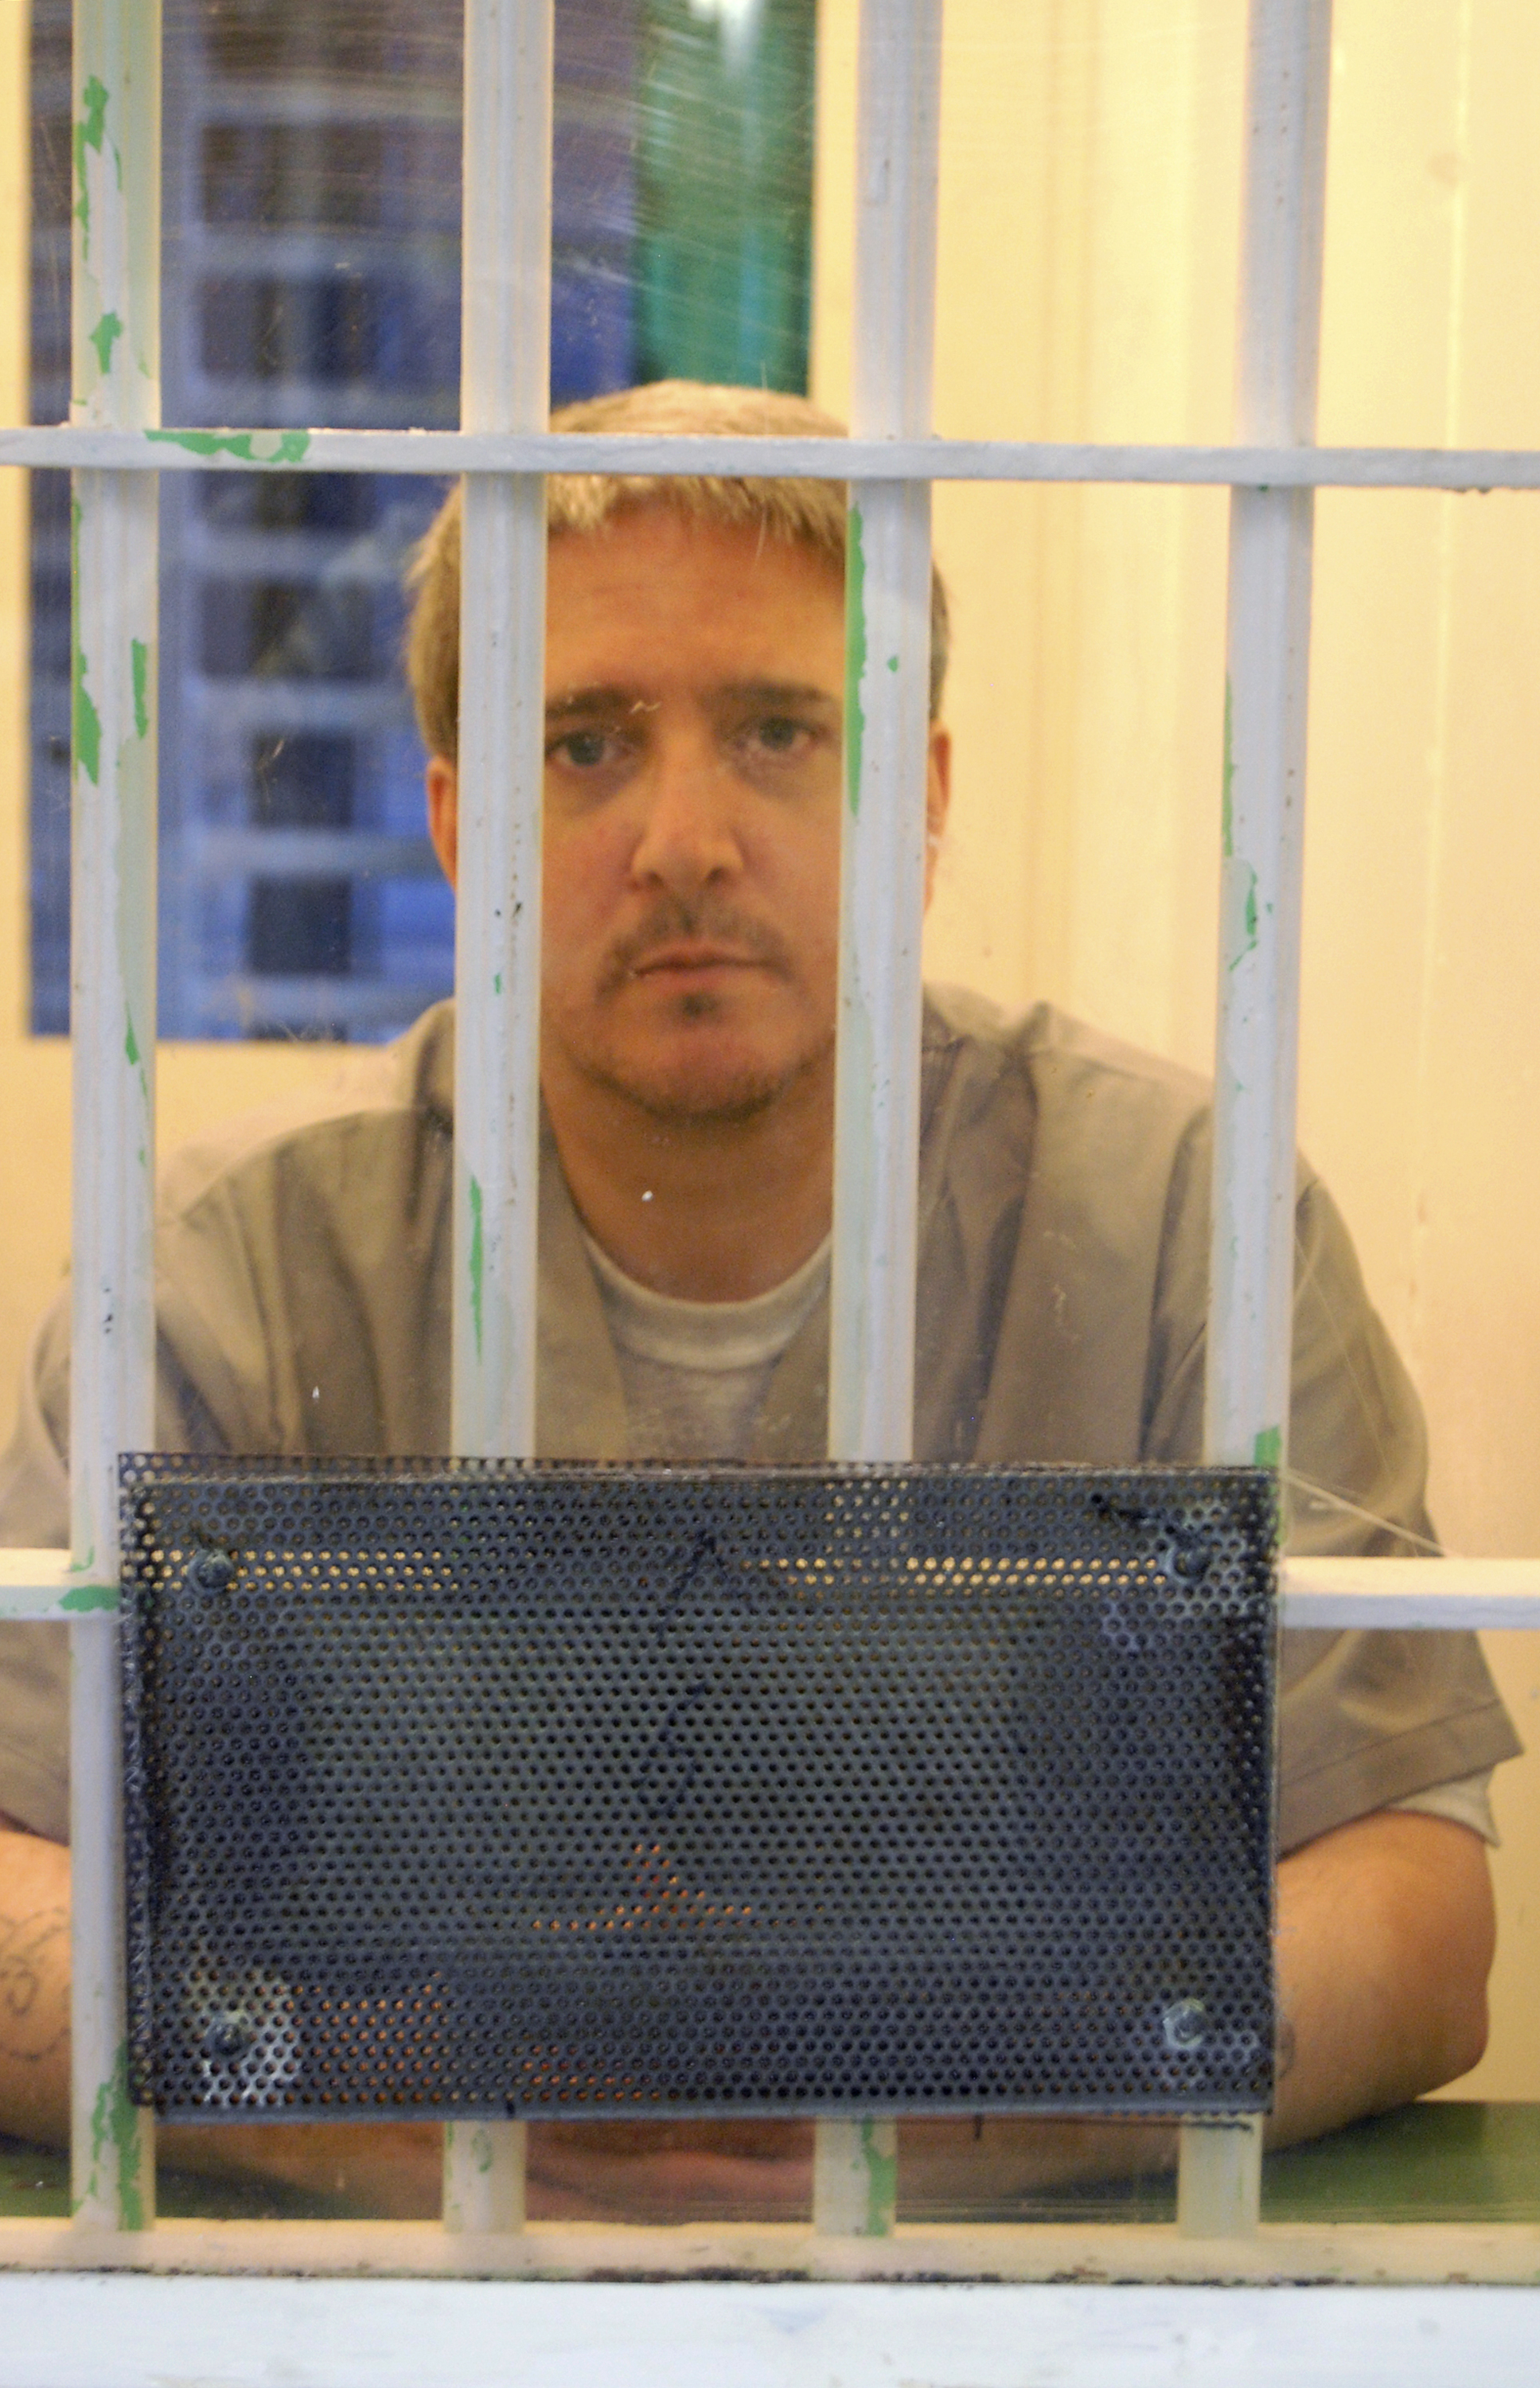 In a Nov. 21, 2014 photo, death row inmate Richard Glossip is pictured at the state penitentiary in McAlester, Ok.